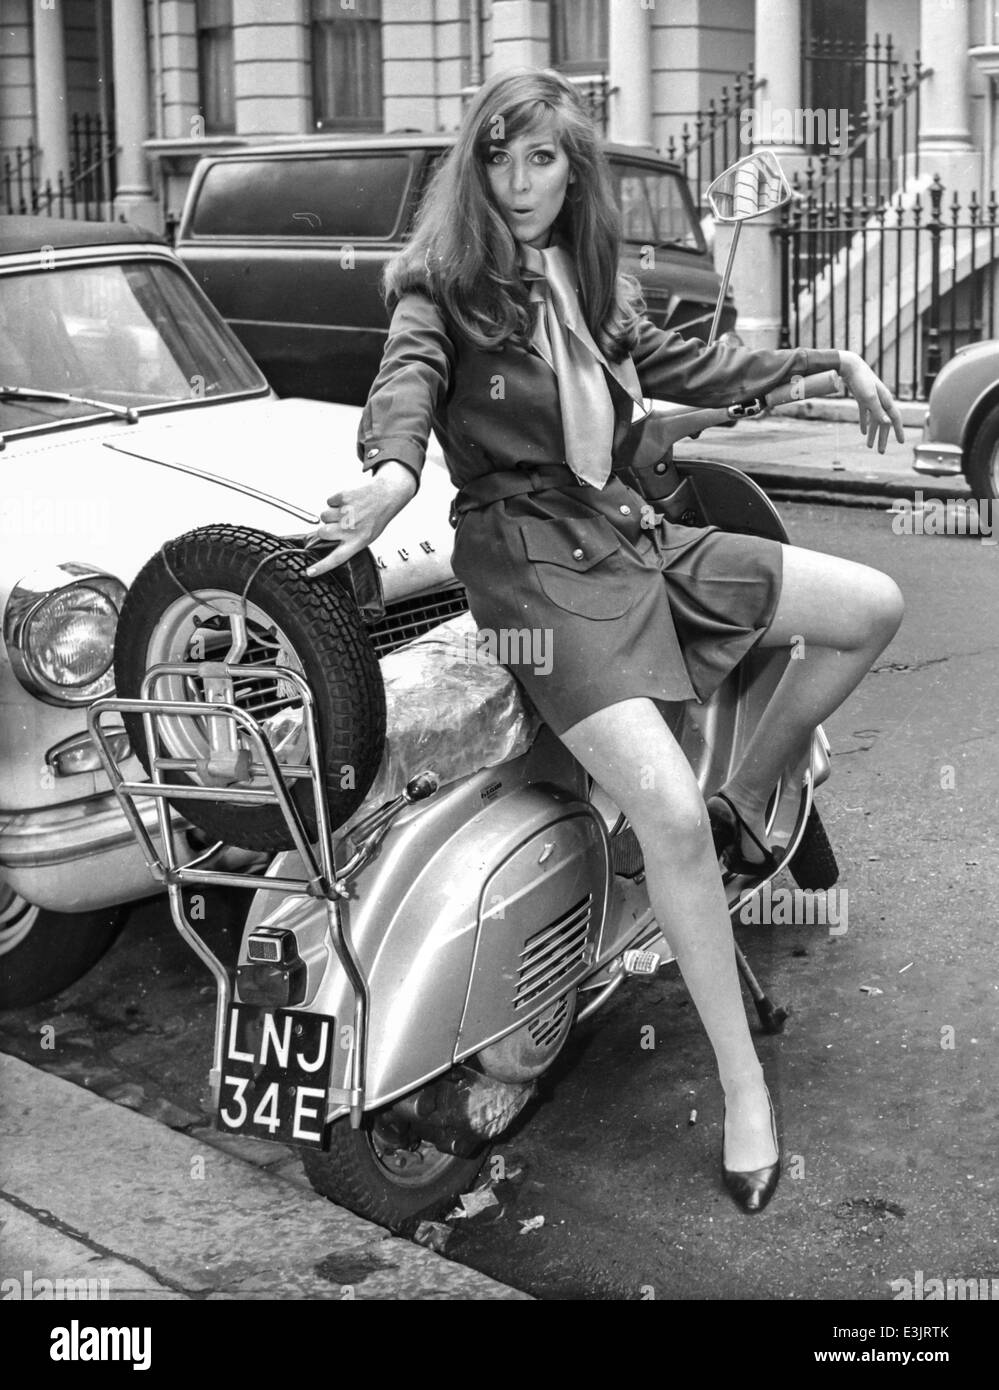 young woman on lambretta during a photographic service,1960's style - Stock Image